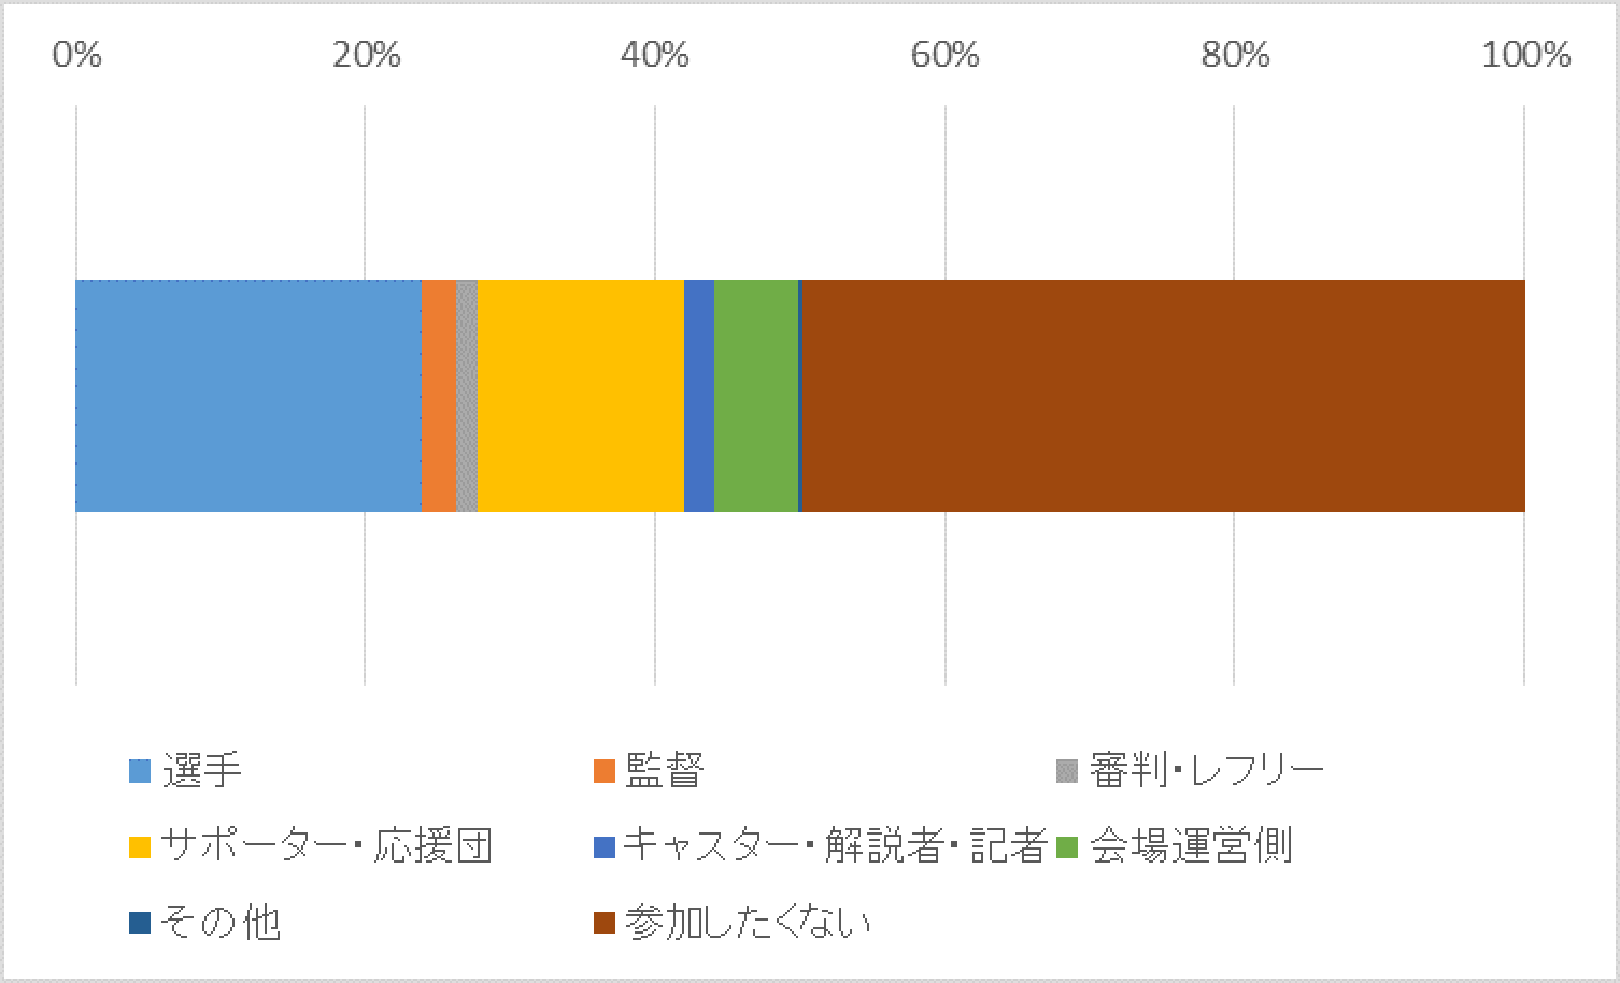 201807-19-fig-02.png